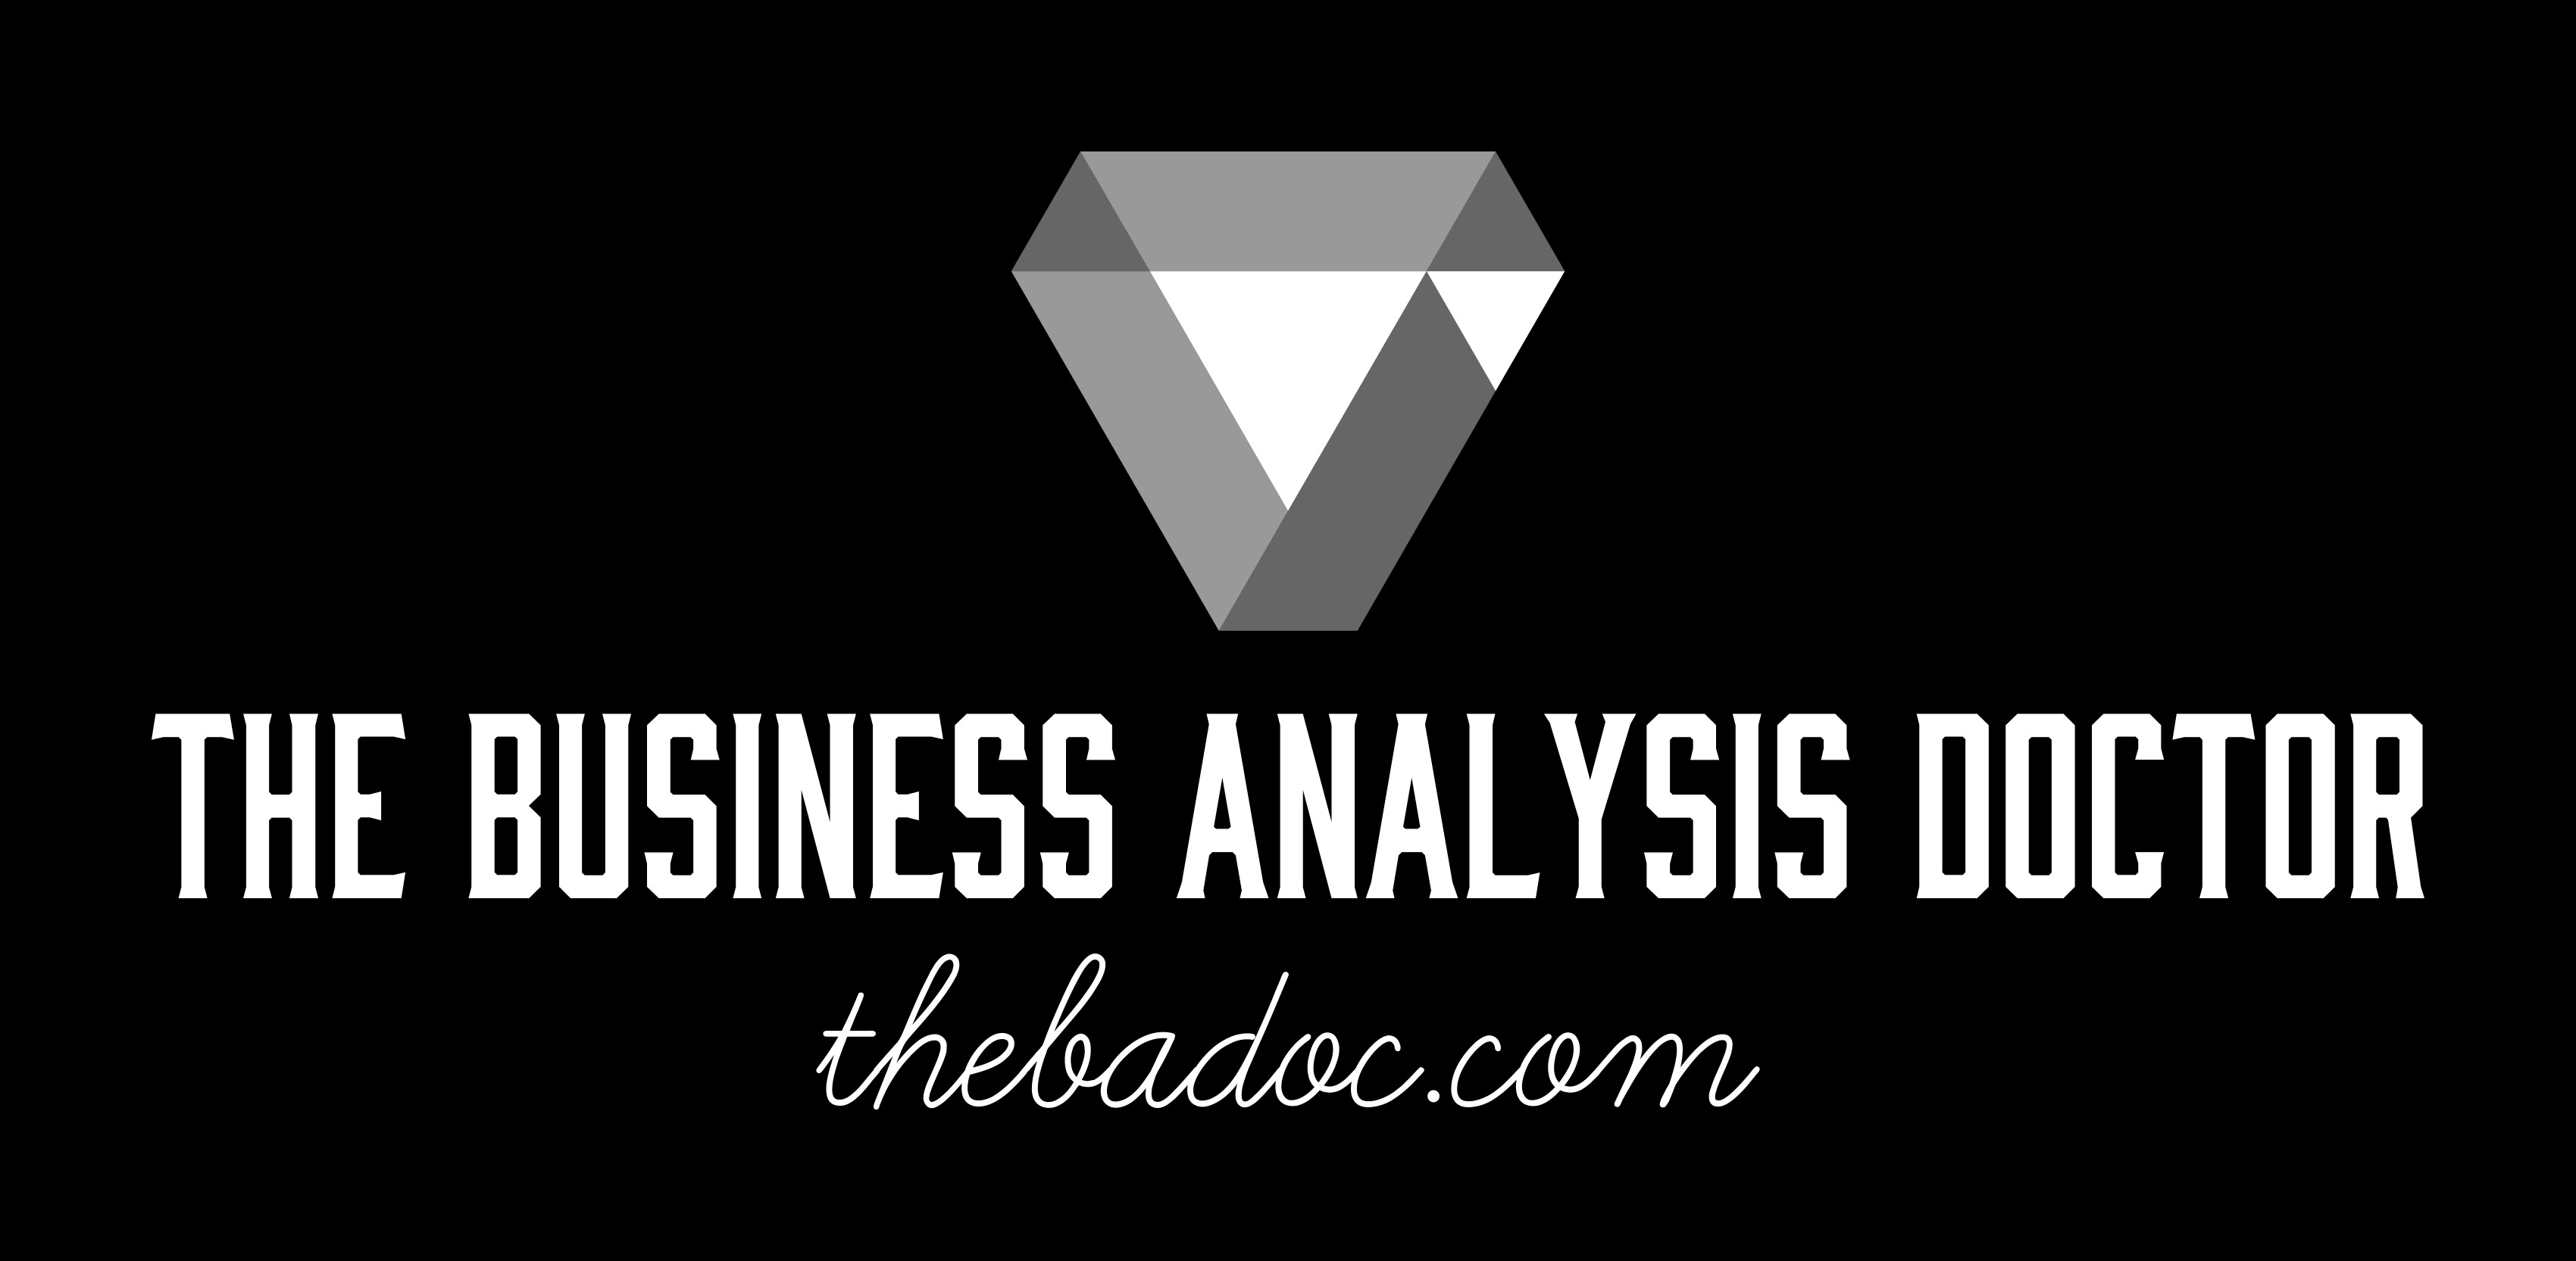 The Business Analysis Doctor eLearning